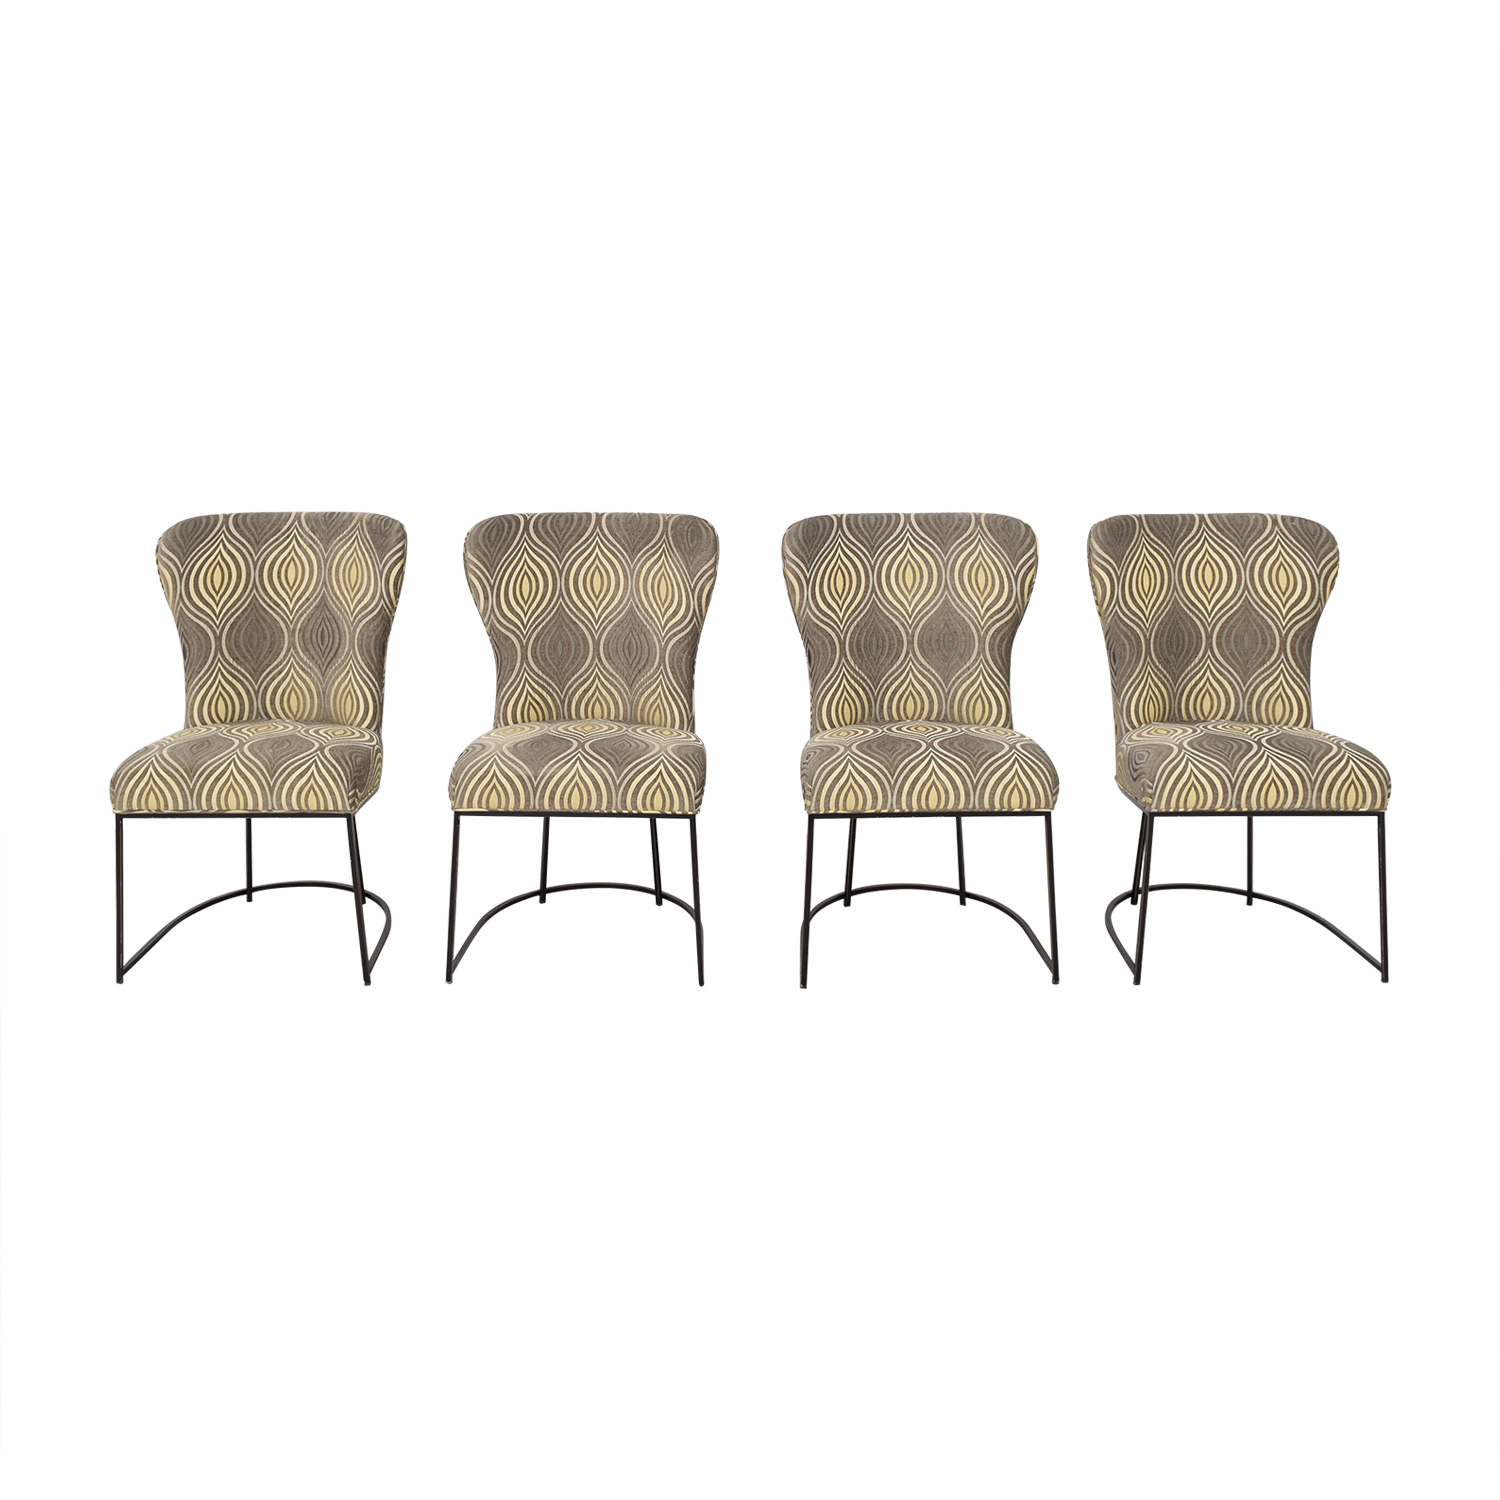 Custom Upholstered Dining Chairs / Chairs